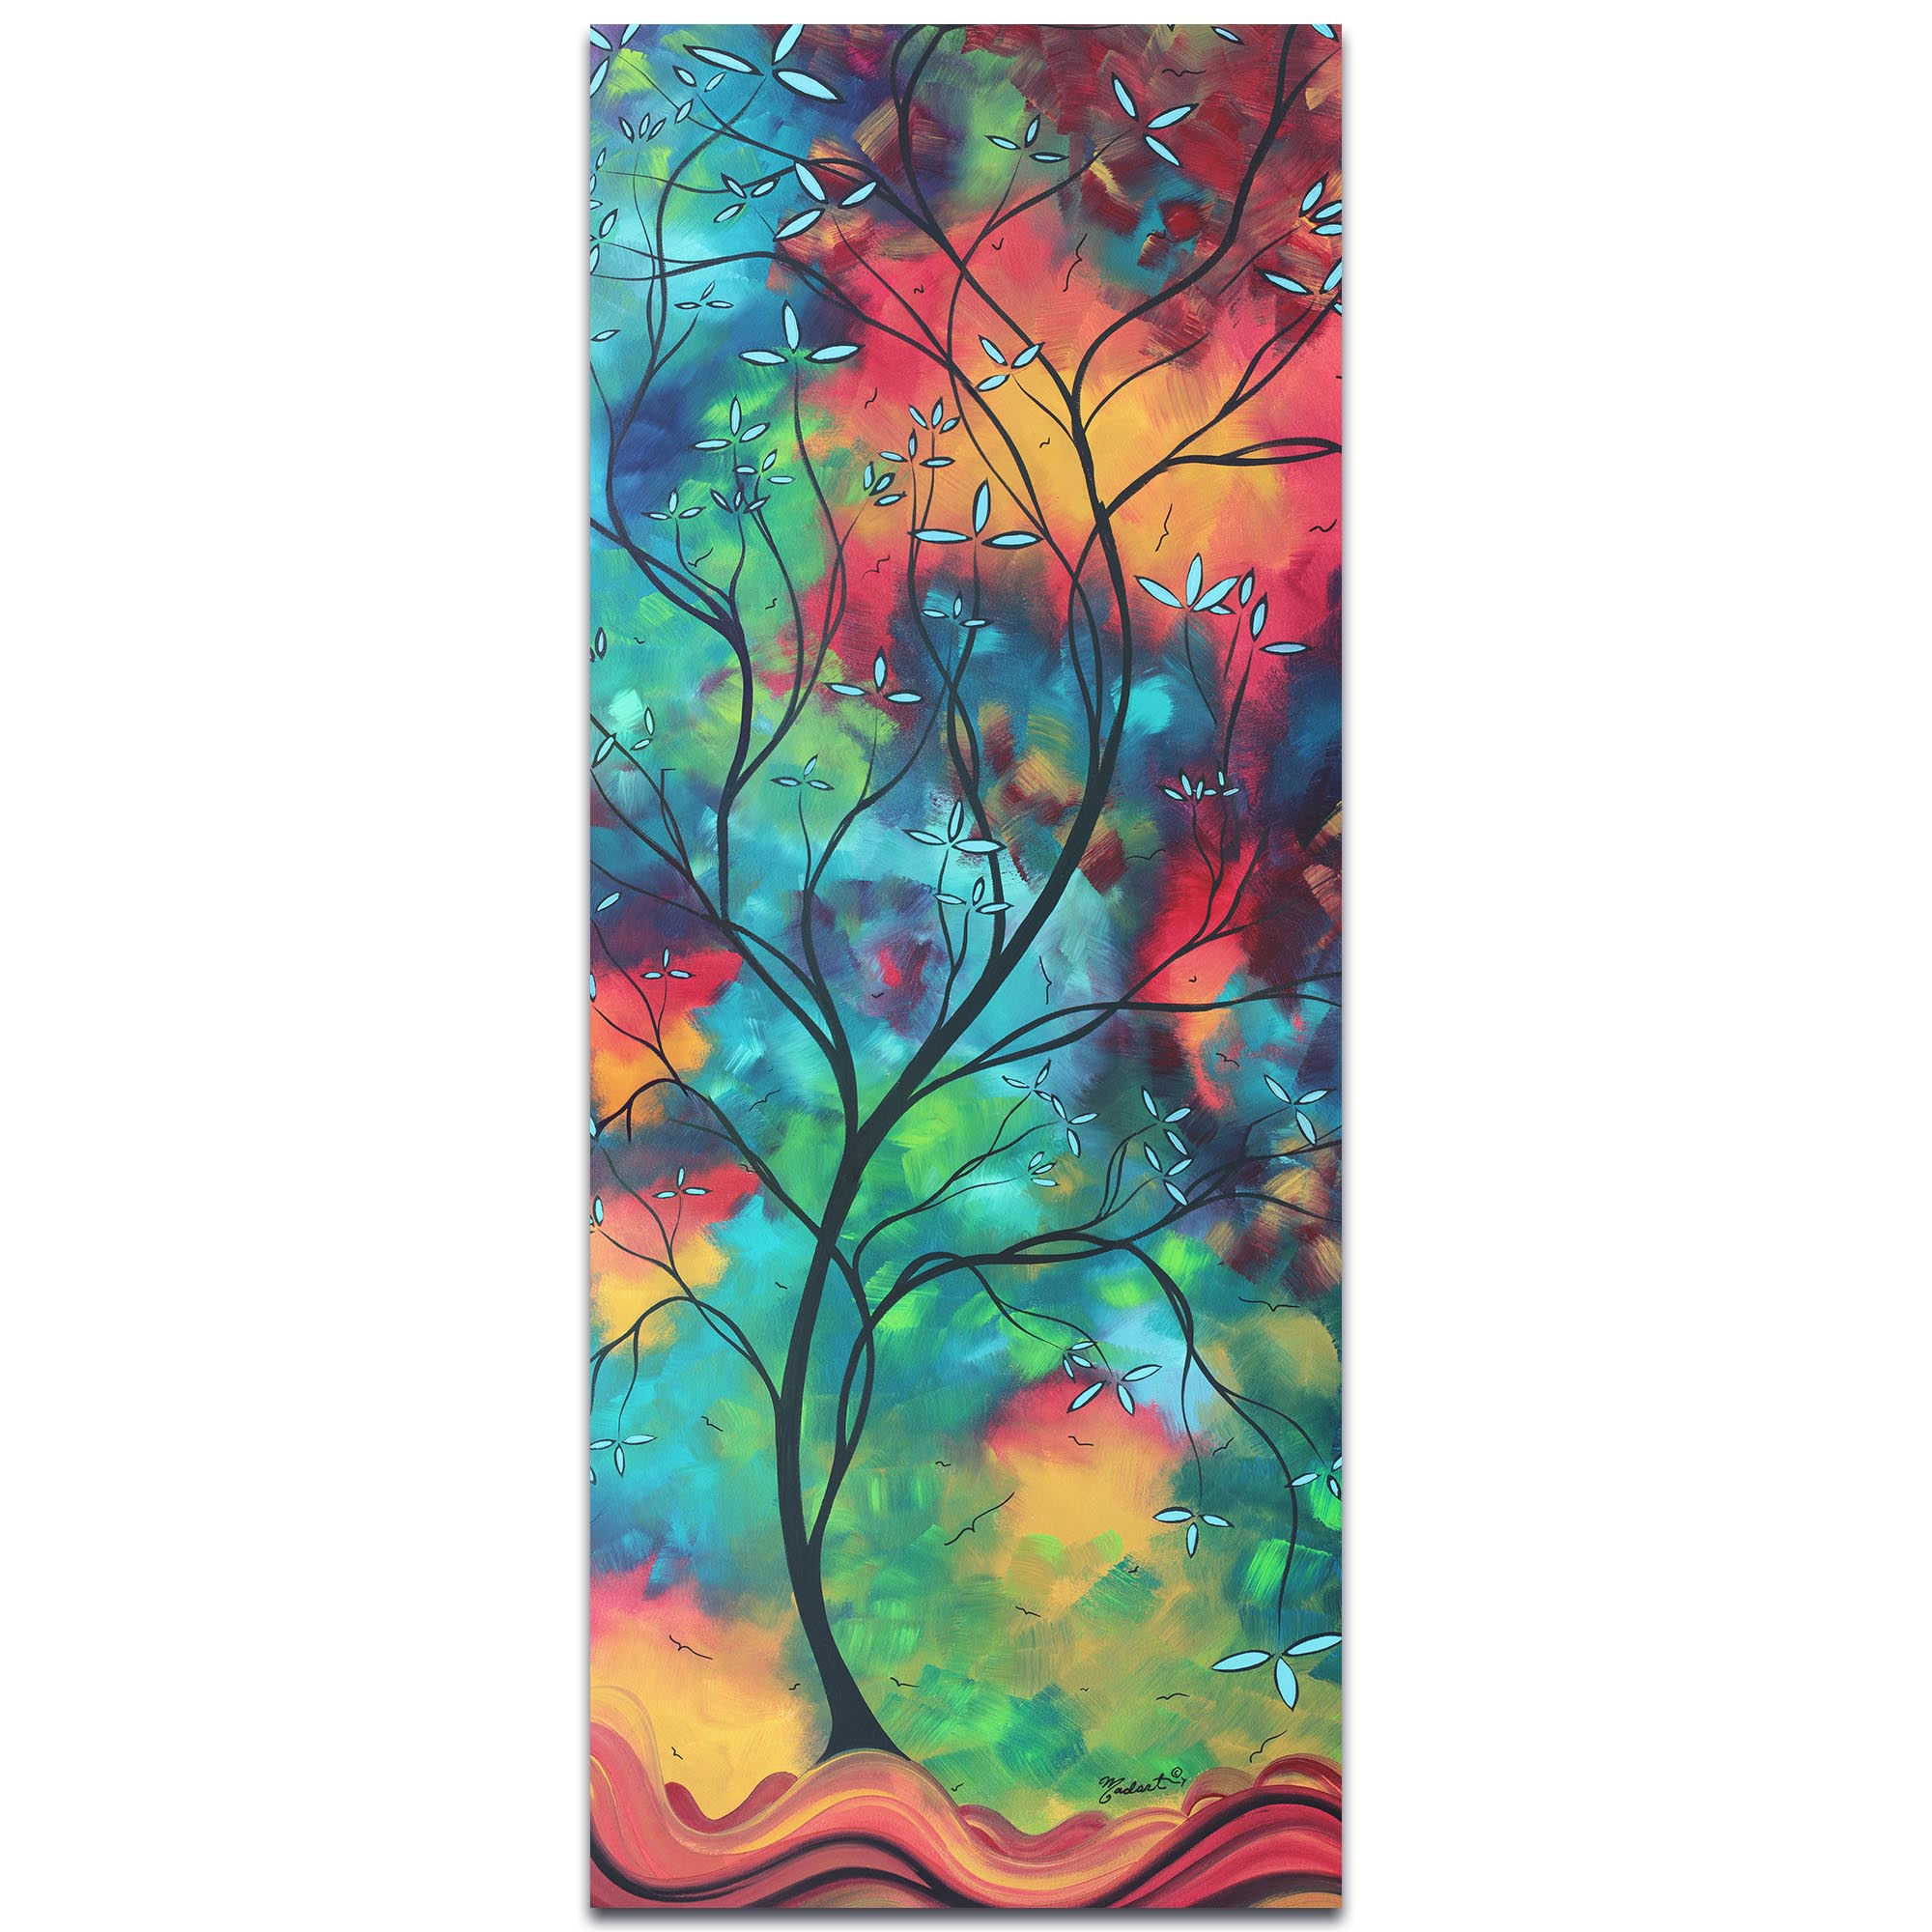 Landscape Painting 'Colored Inspiration' - Abstract Tree Art on Metal or Acrylic